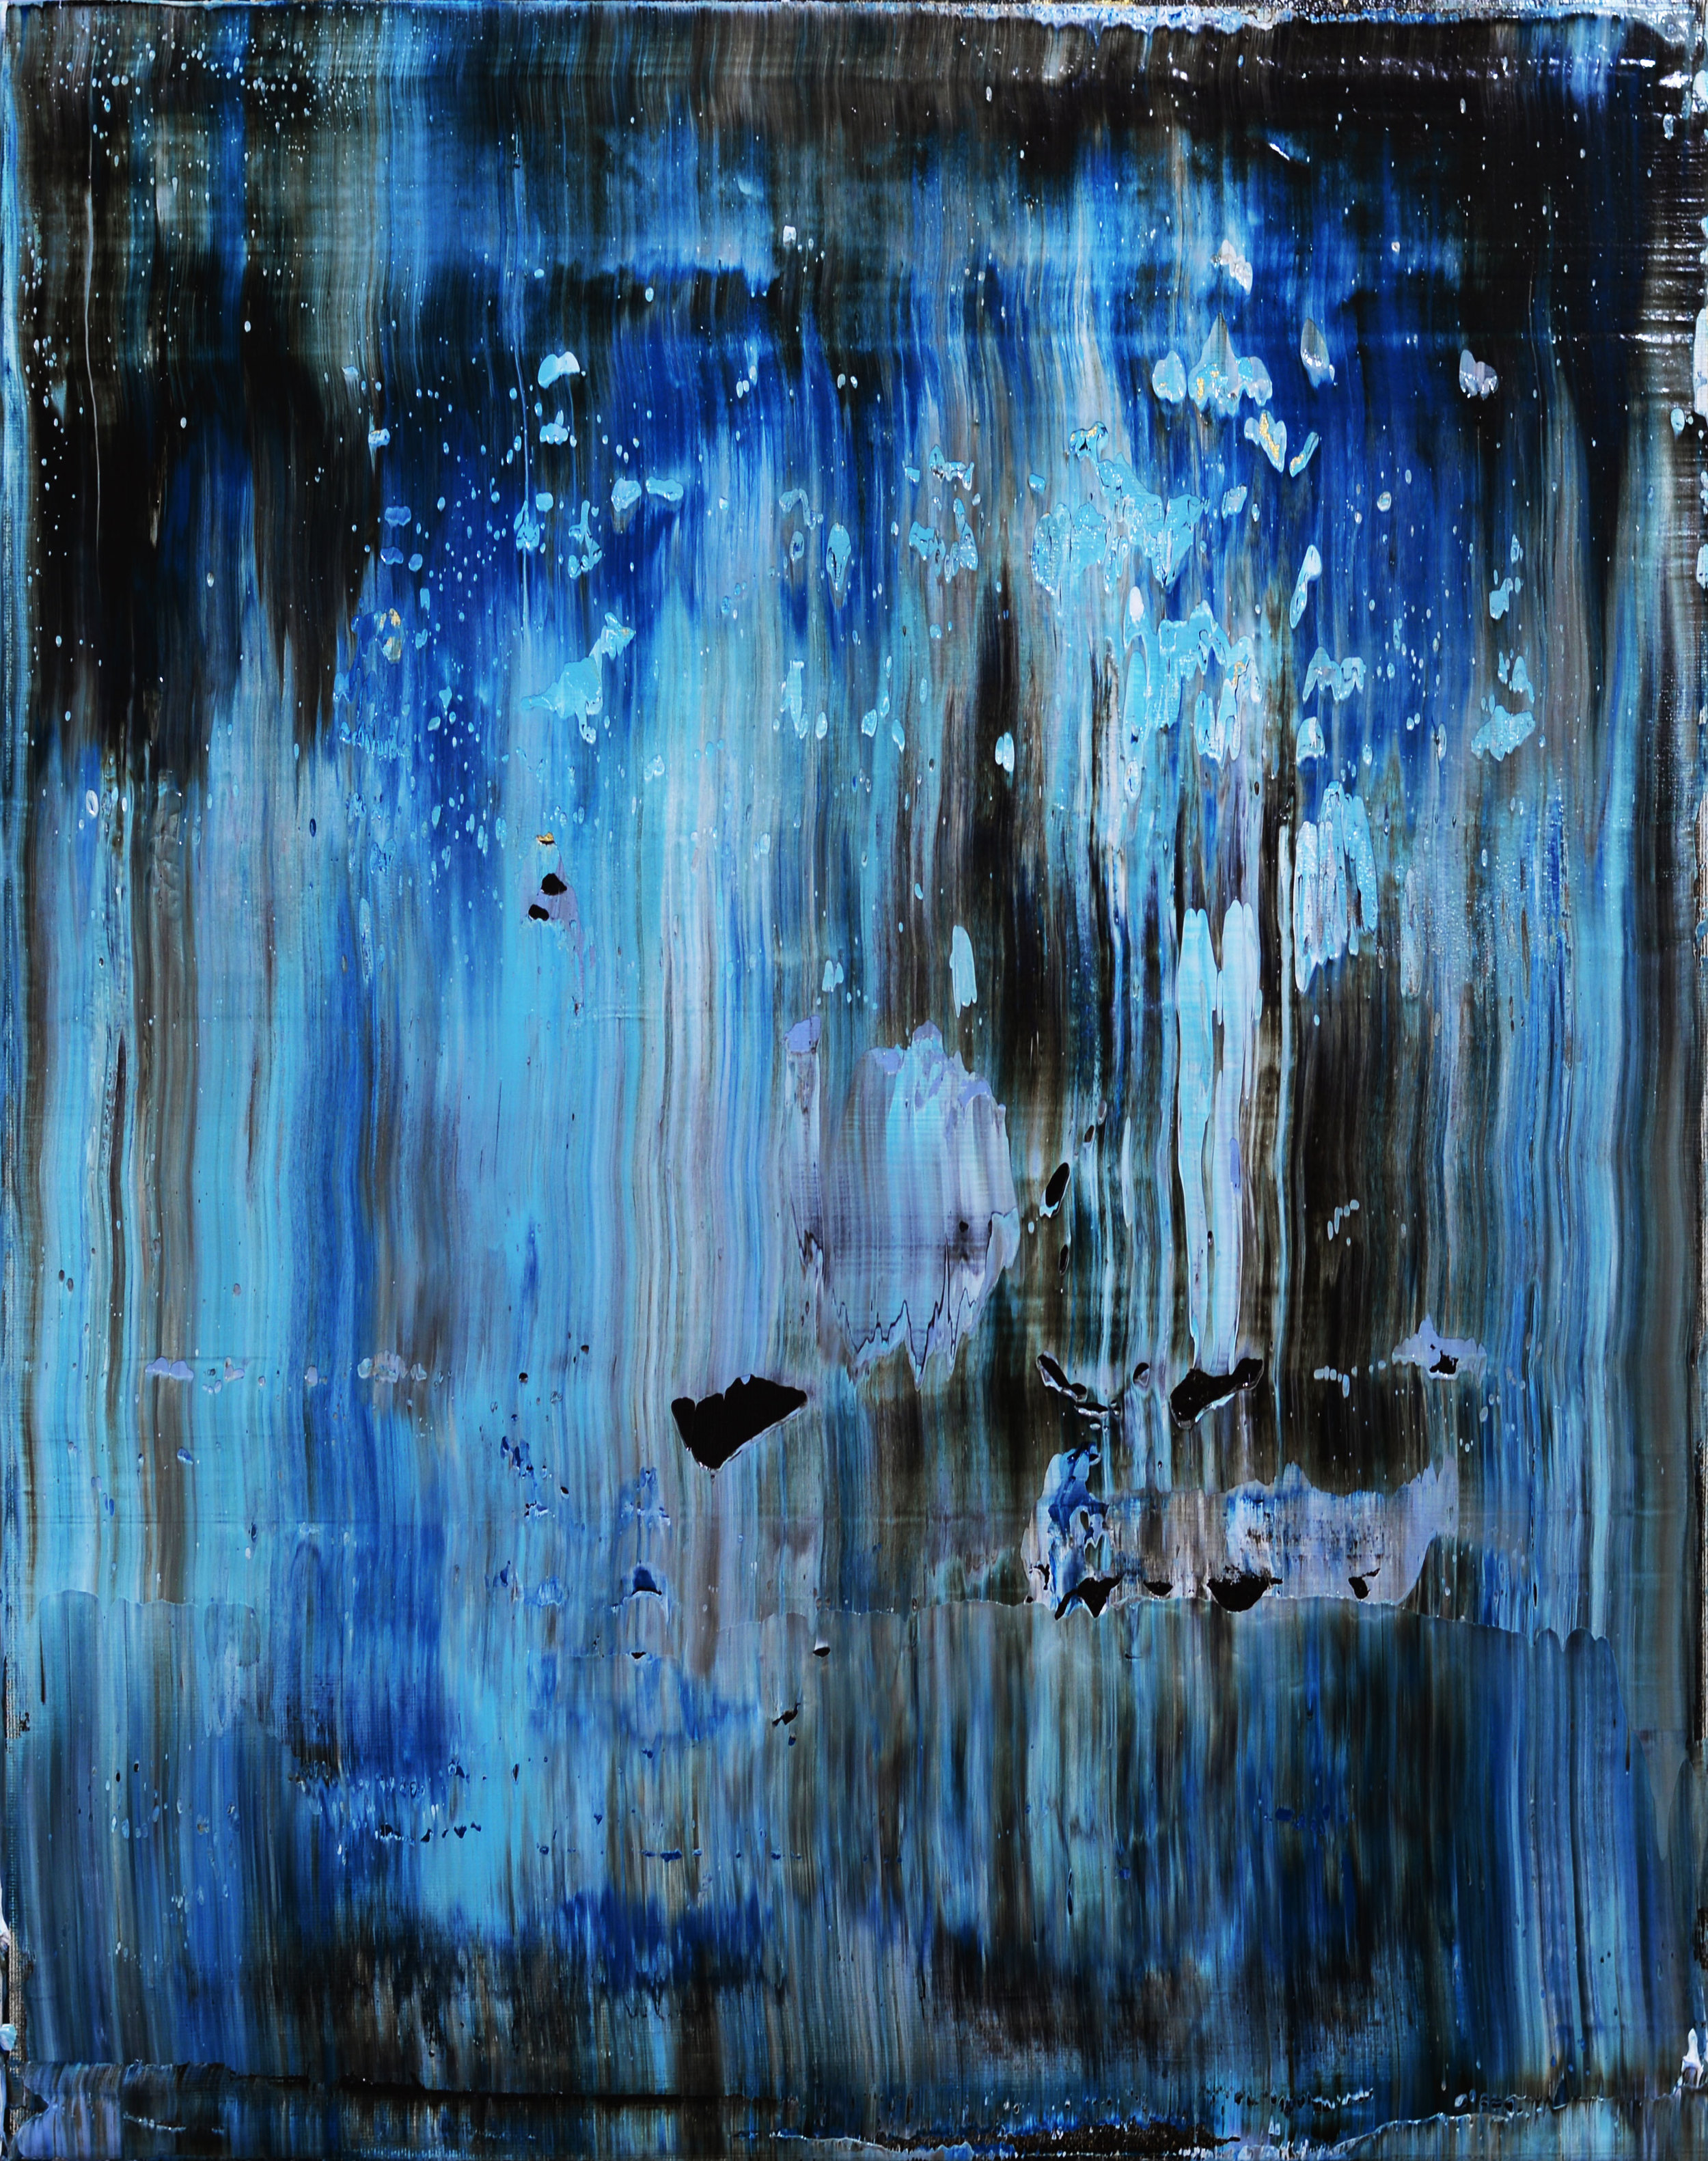 """To Calm a Storm with a Single Breath"" is an original, abstract oil painting by Los Angeles based artist, Laura Viapiano."